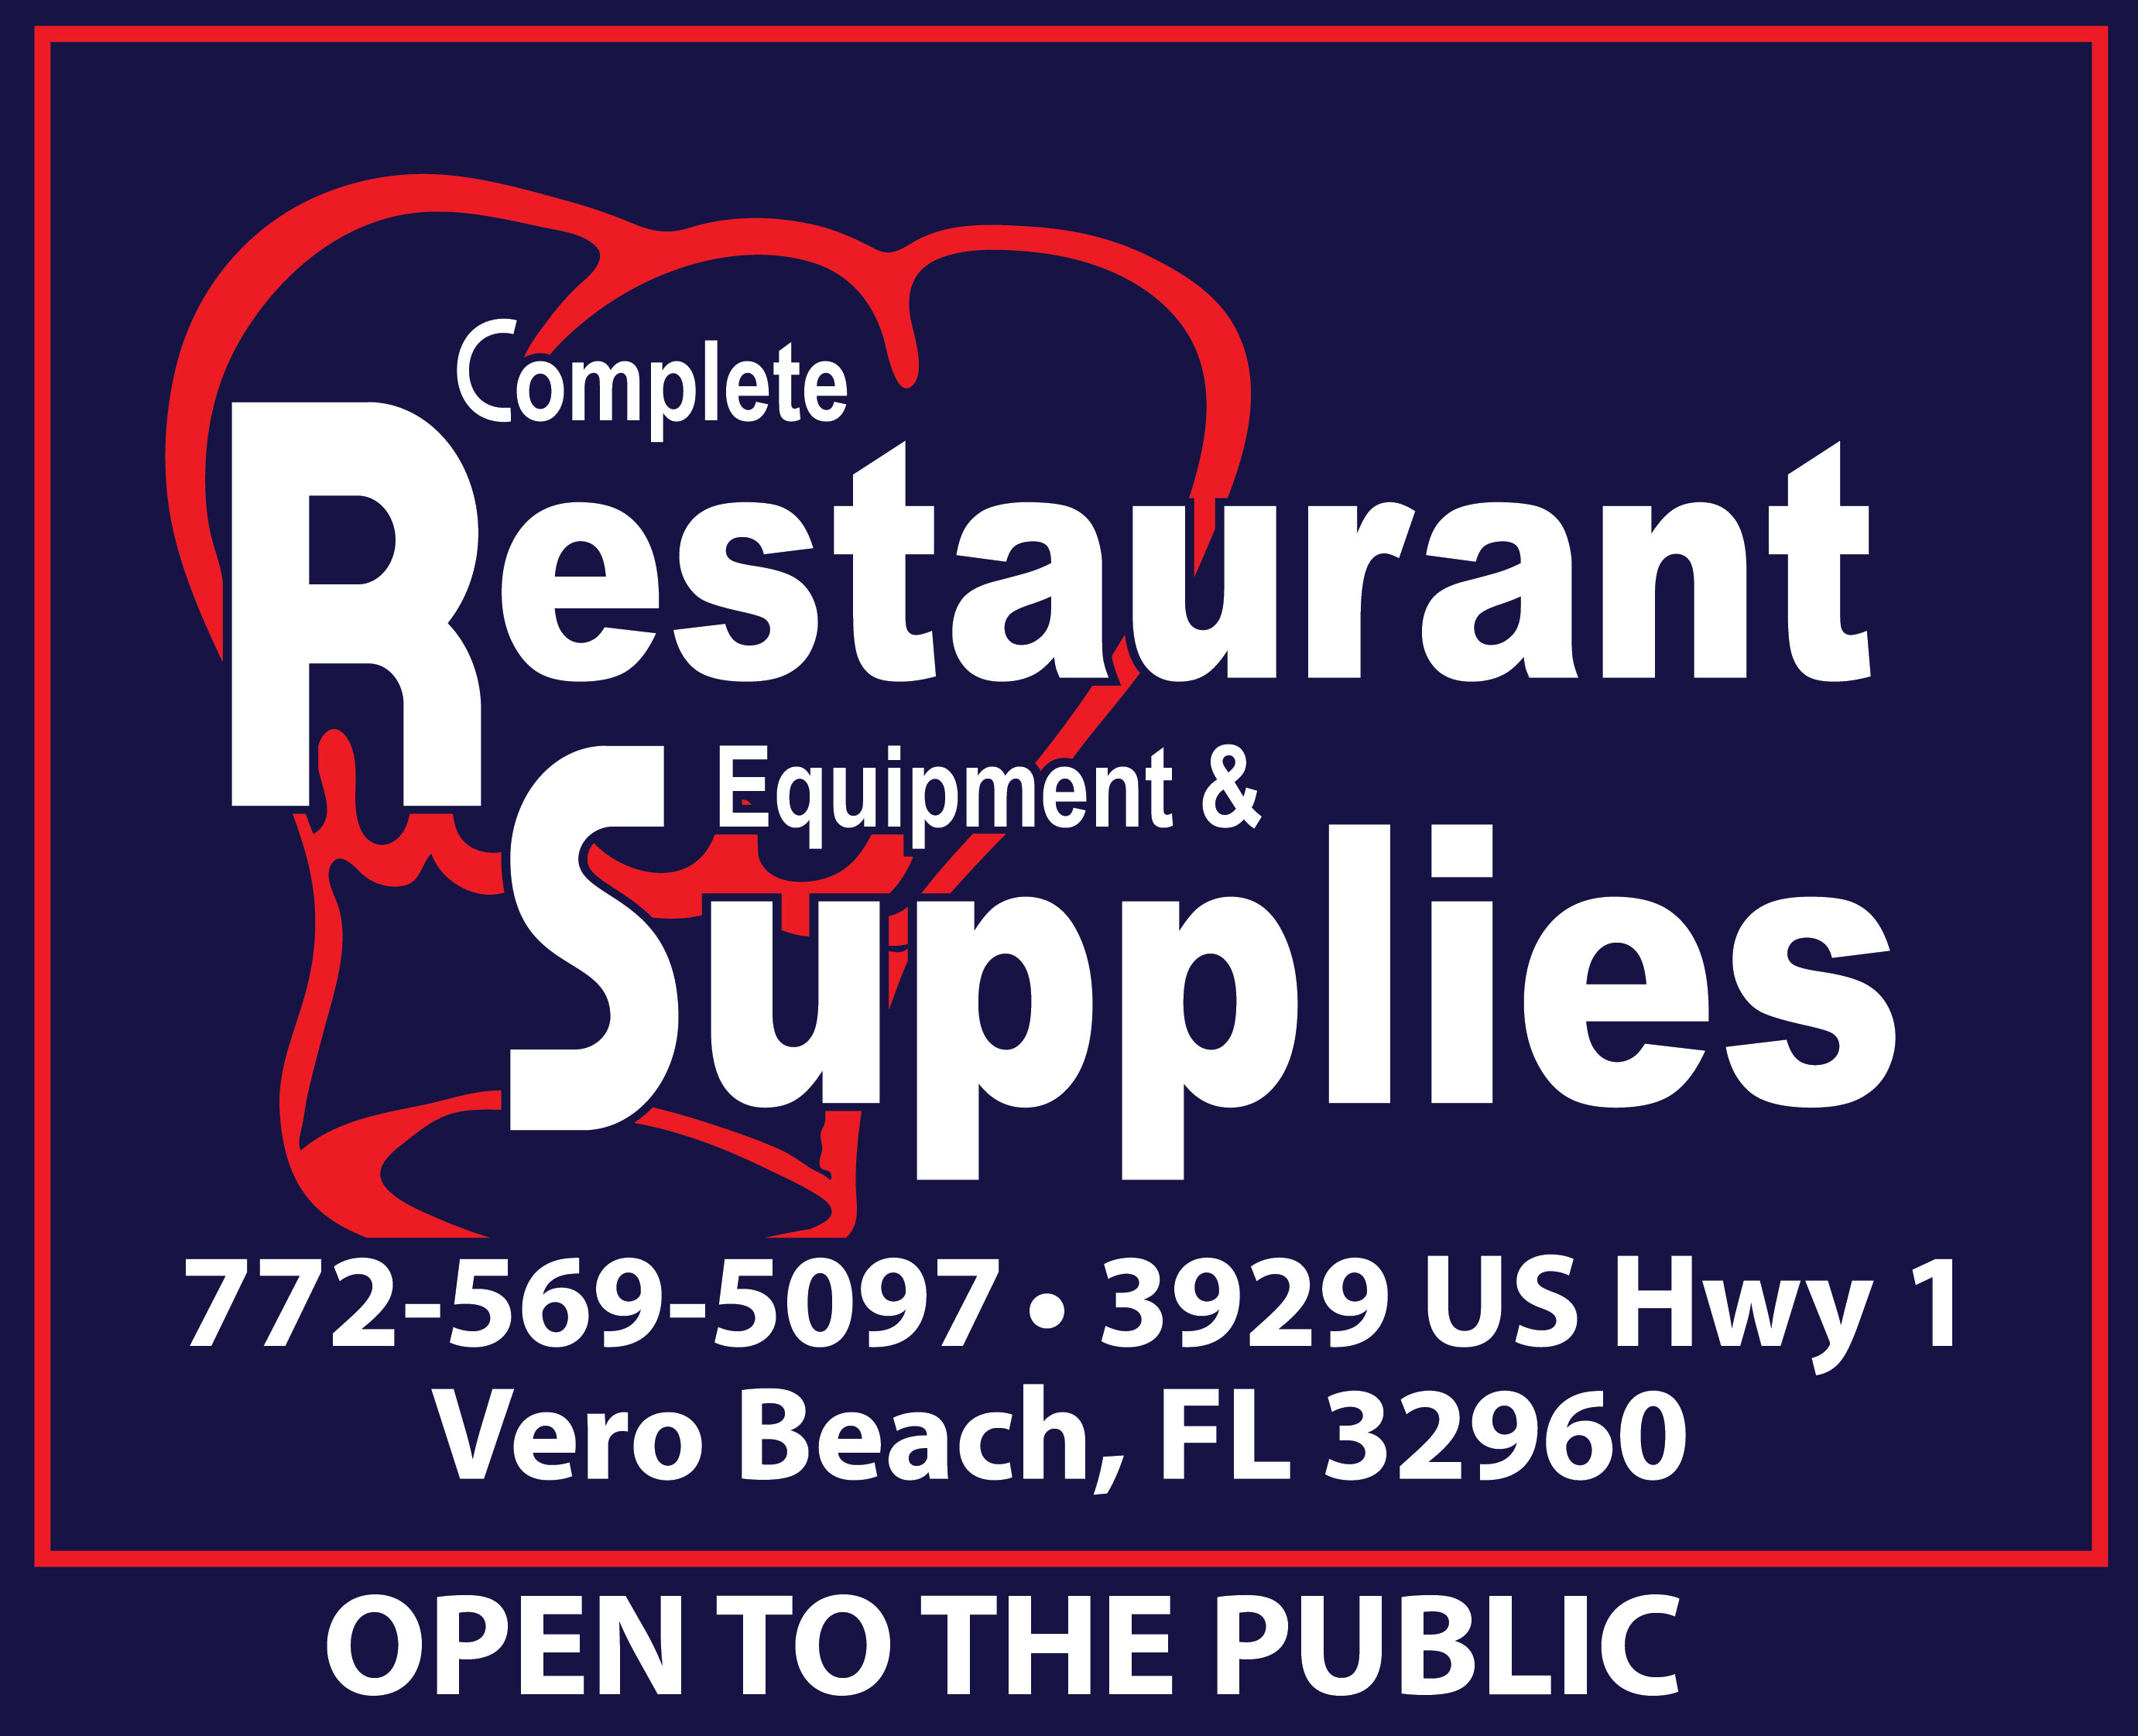 Complete Restaurant Equipment